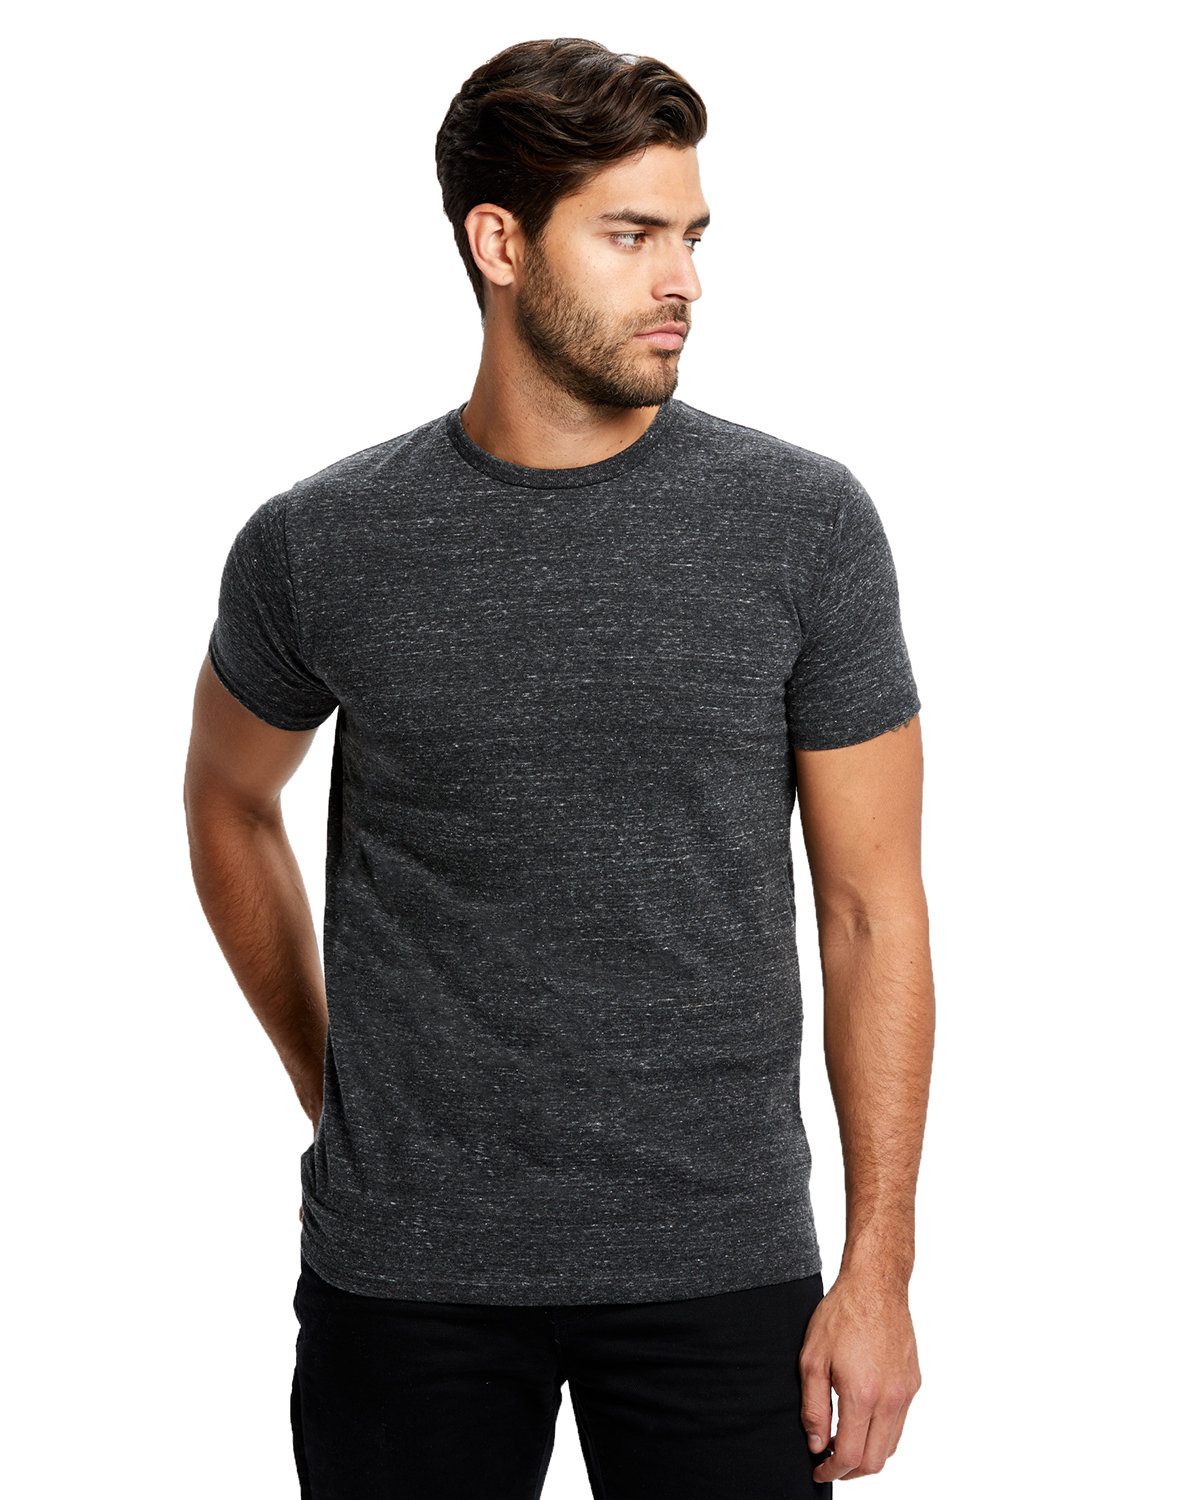 US Blanks Men's Short-Sleeve Made in USA Triblend T-Shirt TRI CHARCOAL